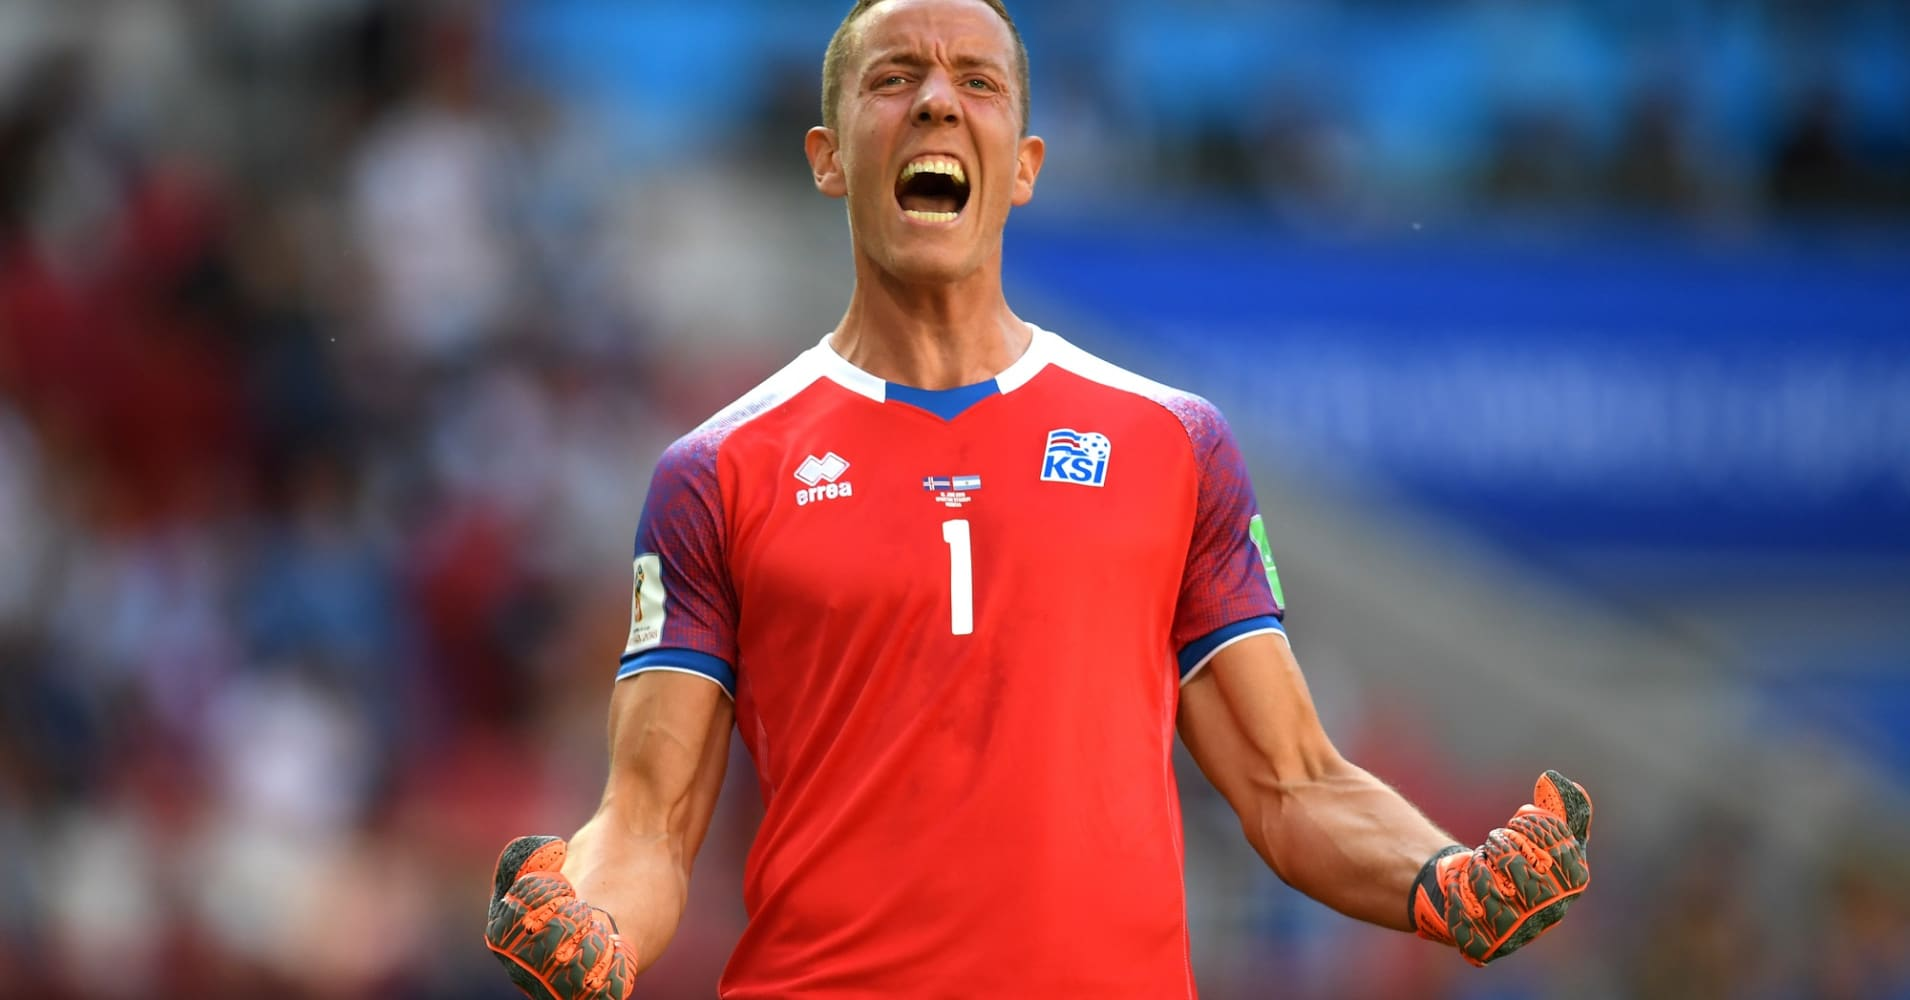 Hannes Halldorsson of Iceland celebrates after team mate Alfred Finnbogason scored his team's first goal during the 2018 FIFA World Cup Russia group D match between Argentina and Iceland at Spartak Stadium on June 16, 2018 in Moscow, Russia.